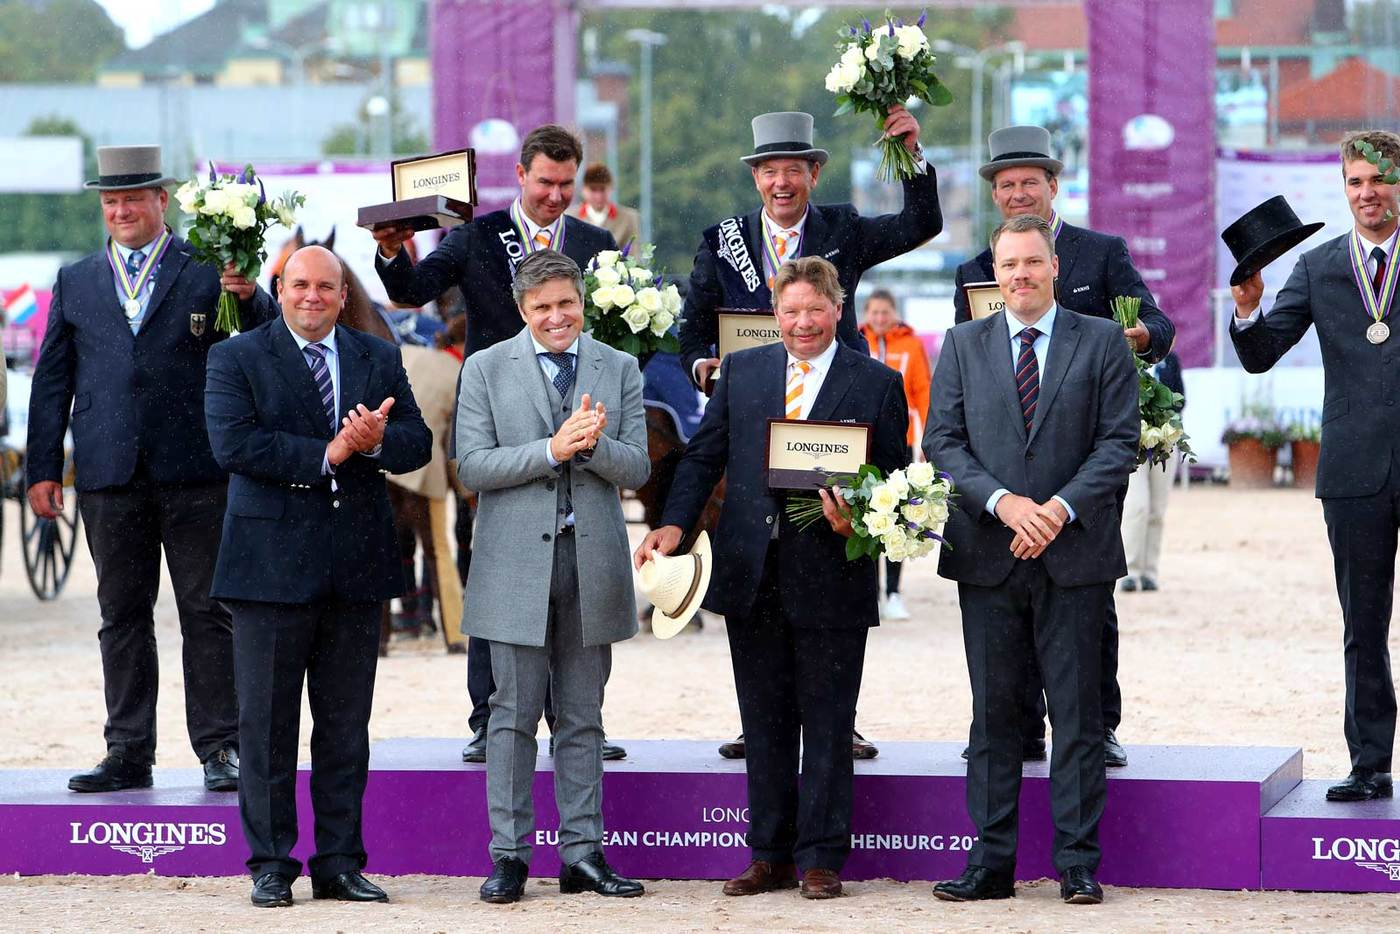 Longines Show Jumping Event: The Longines FEI European Championships: performance at its peak   2